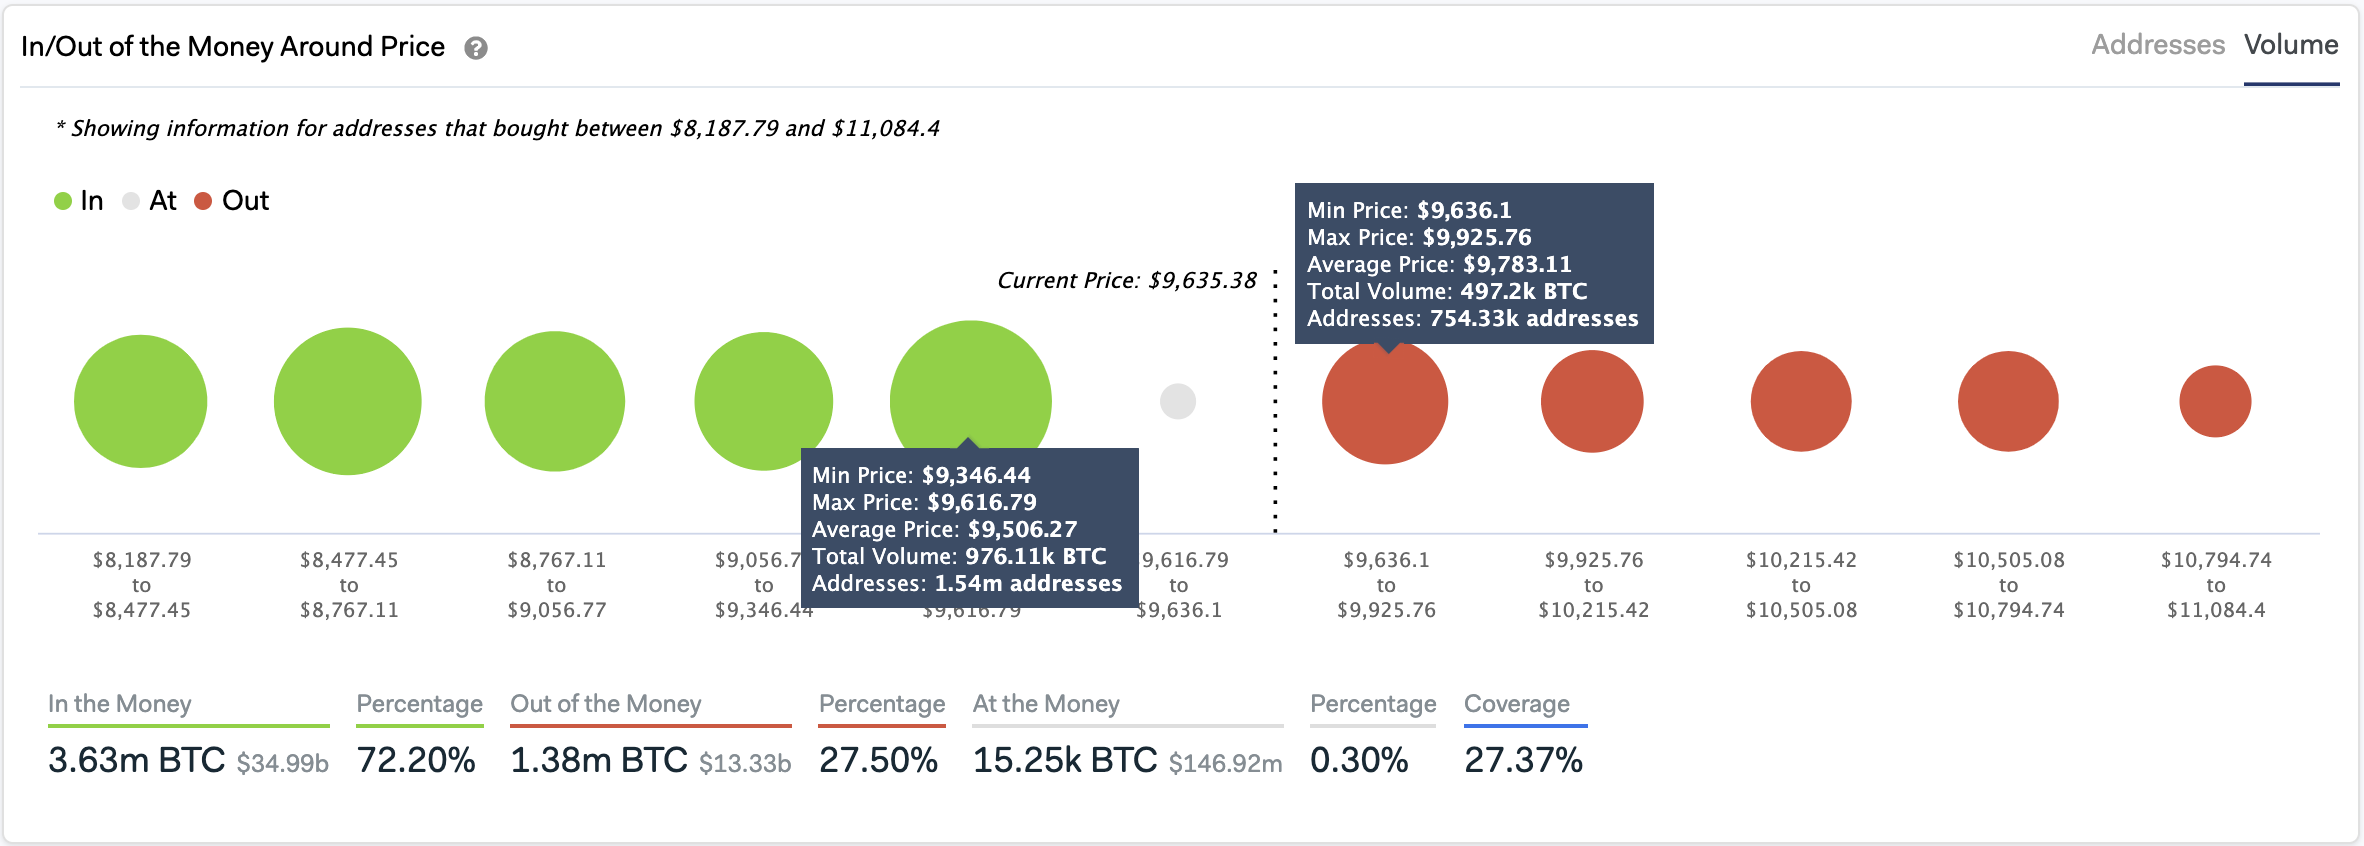 In/Out of the Money Around Bitcoin Price cohort analysis by IntoTheBlock